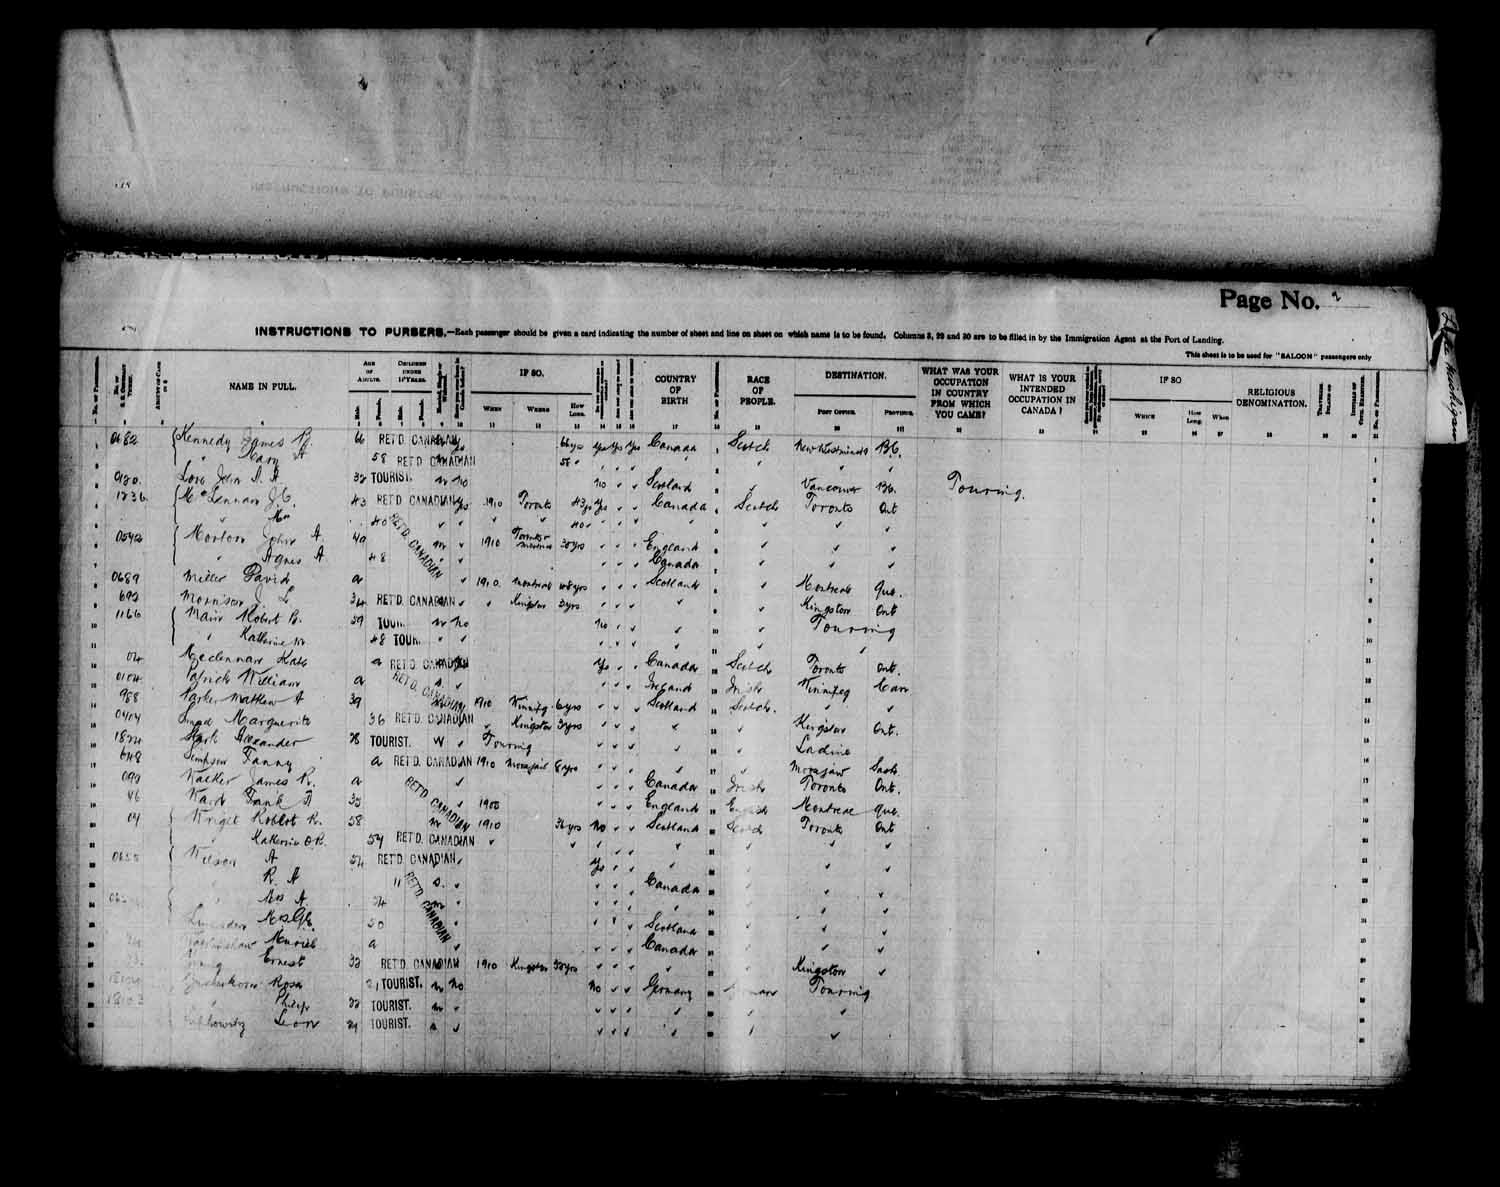 Digitized page of Passenger Lists for Image No.: e003566508